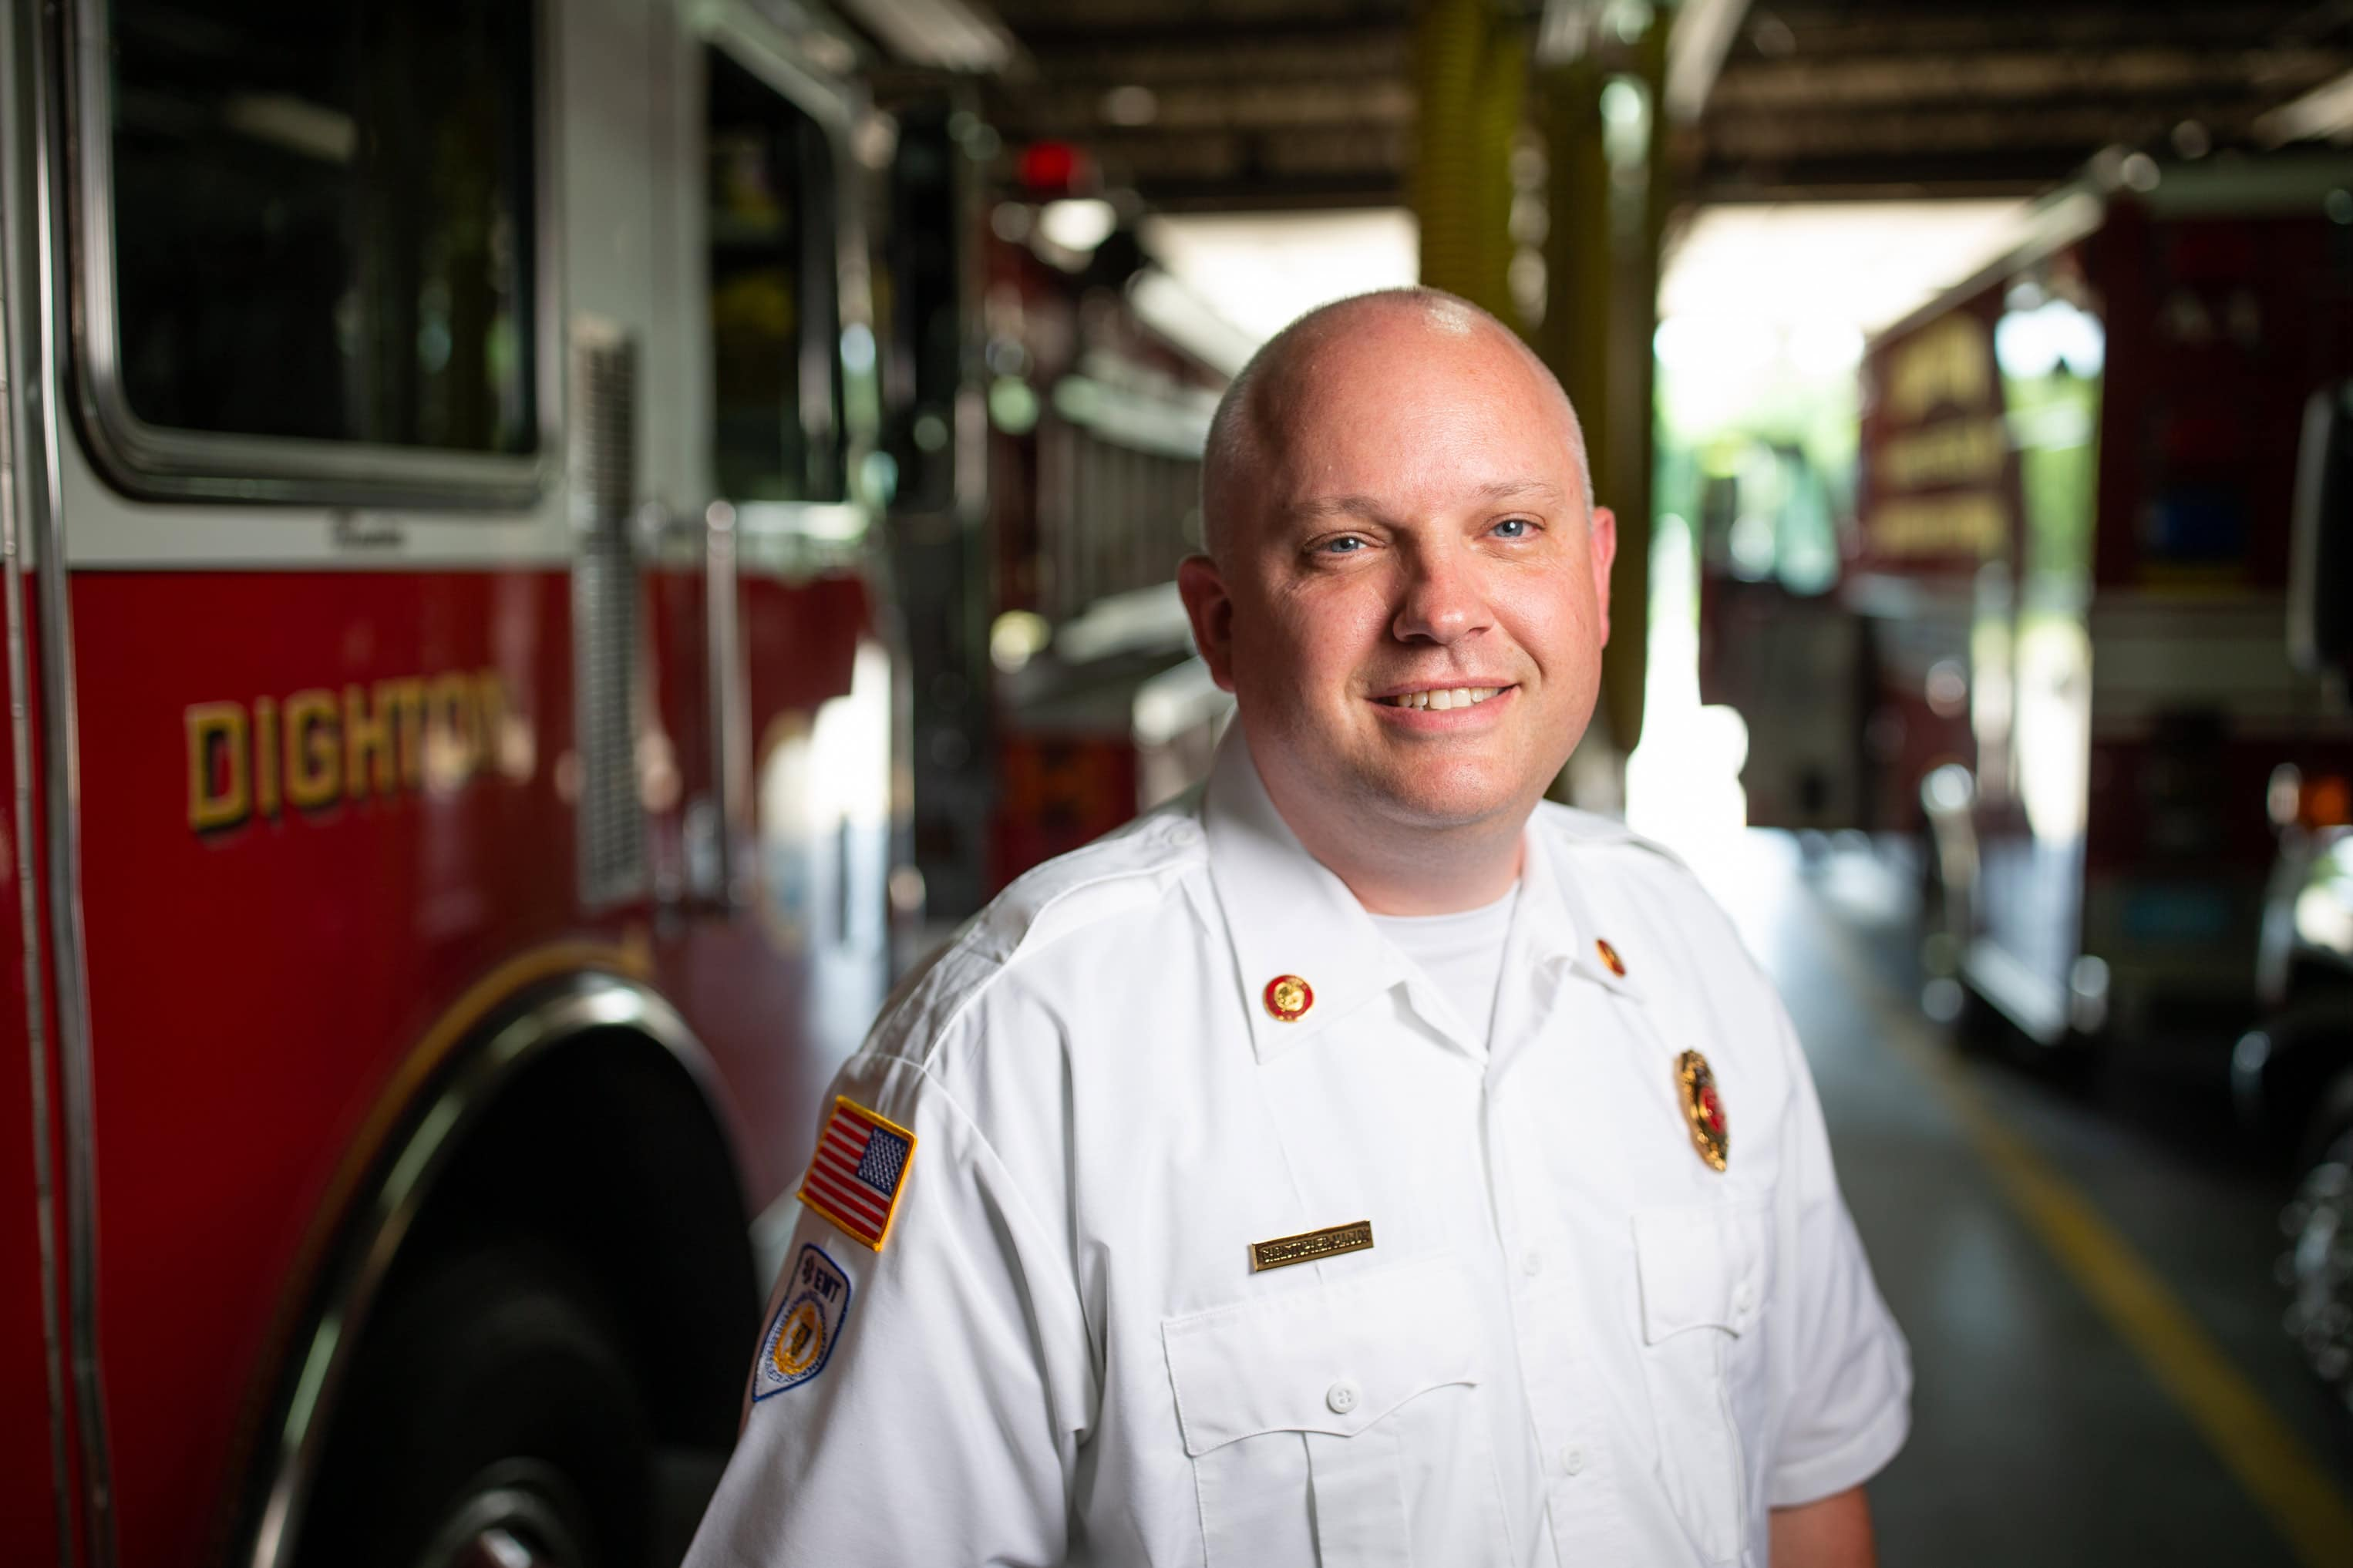 Dighton Fire-Rescue Chief Christopher Maguy